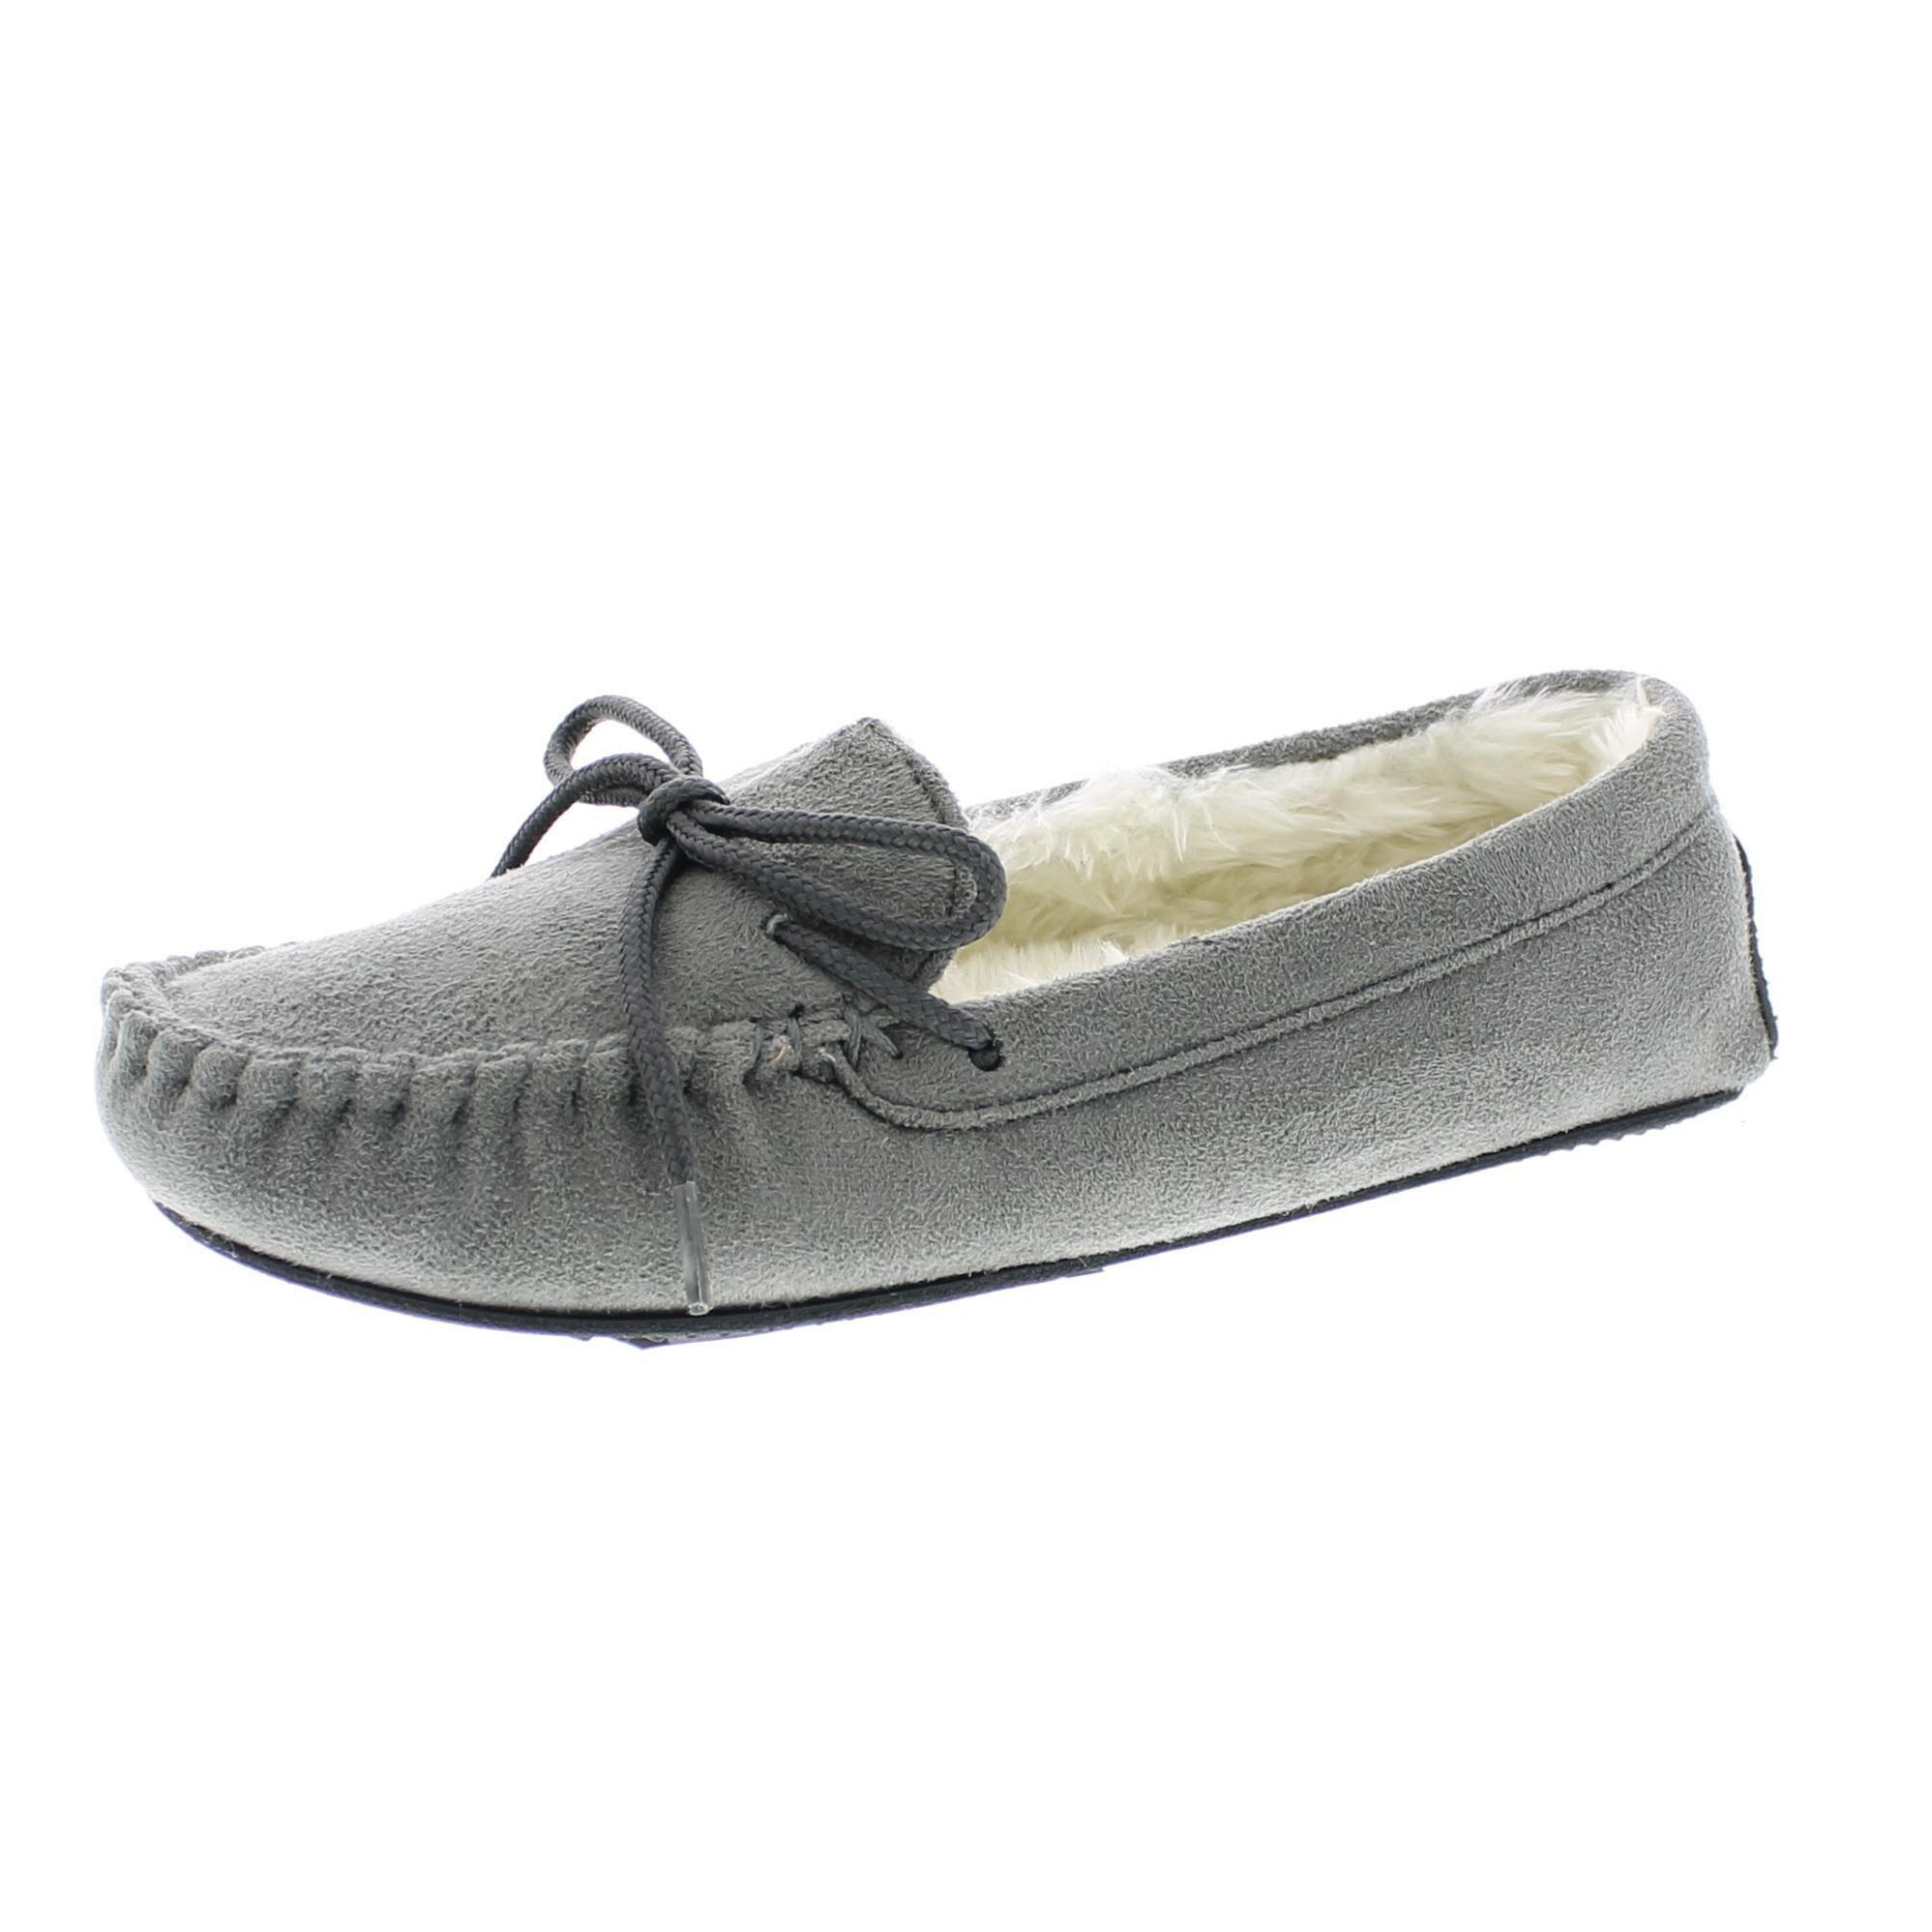 Gold Toe Women's Frances Plush Faux Fur Lined Microsuede Moccasin Slipper with Rope Cord Lace Bow Grey L 9 US